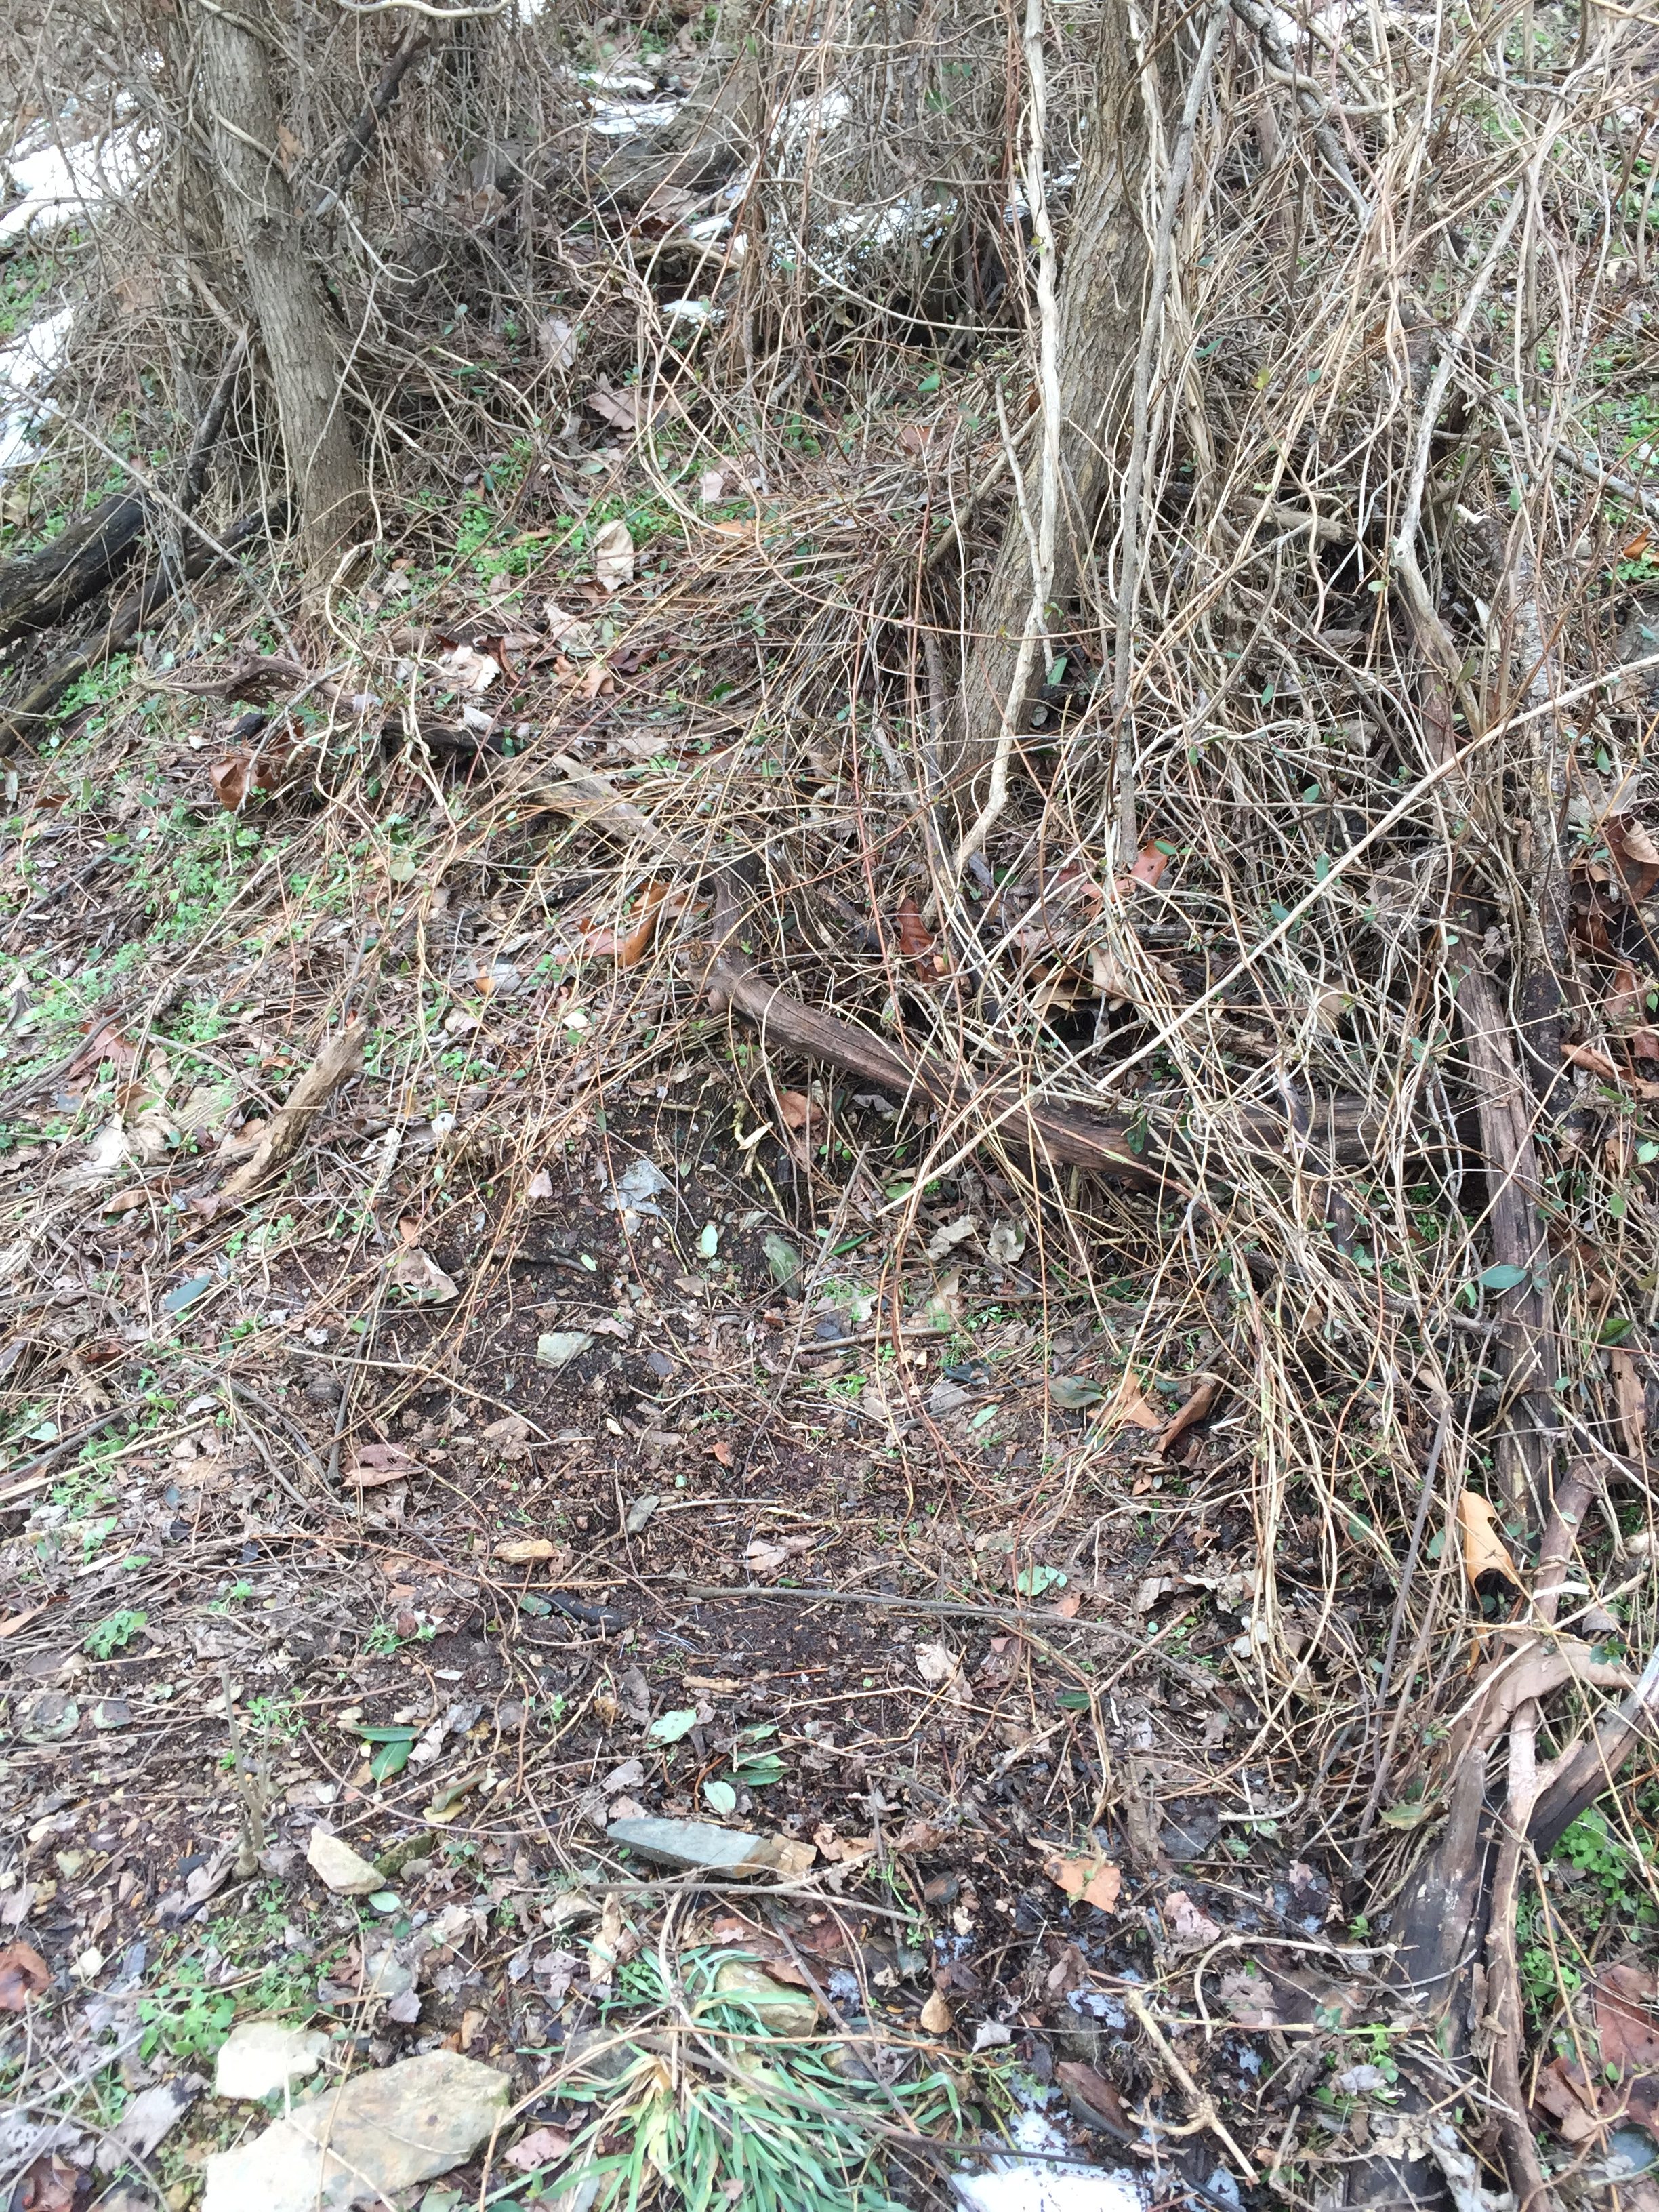 Deer will prefer to bed with back cover, like this bed with a tangle of vines and briers behind it